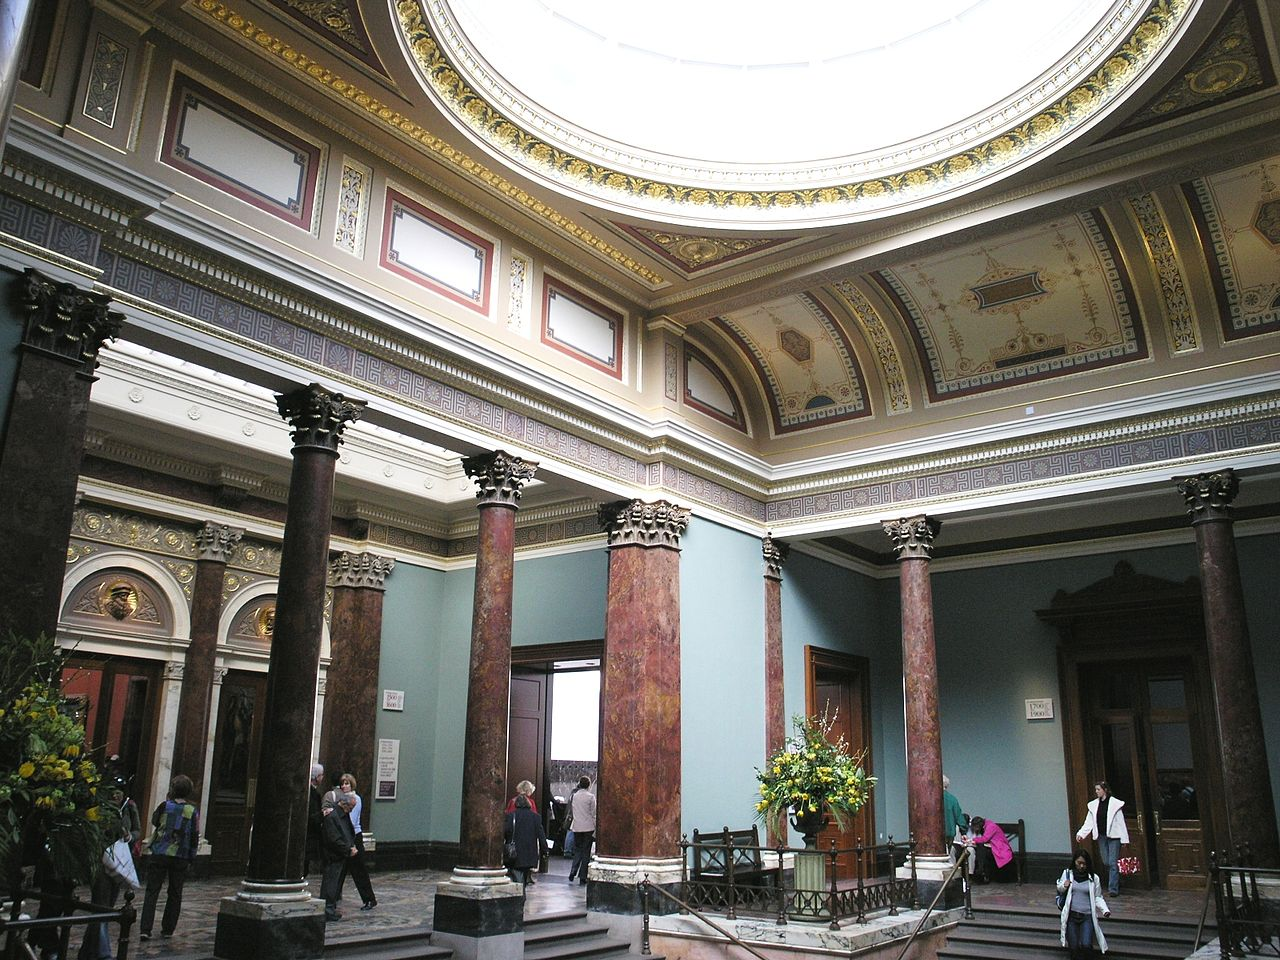 File Entrance Hall Of The National Gallery London Jpg